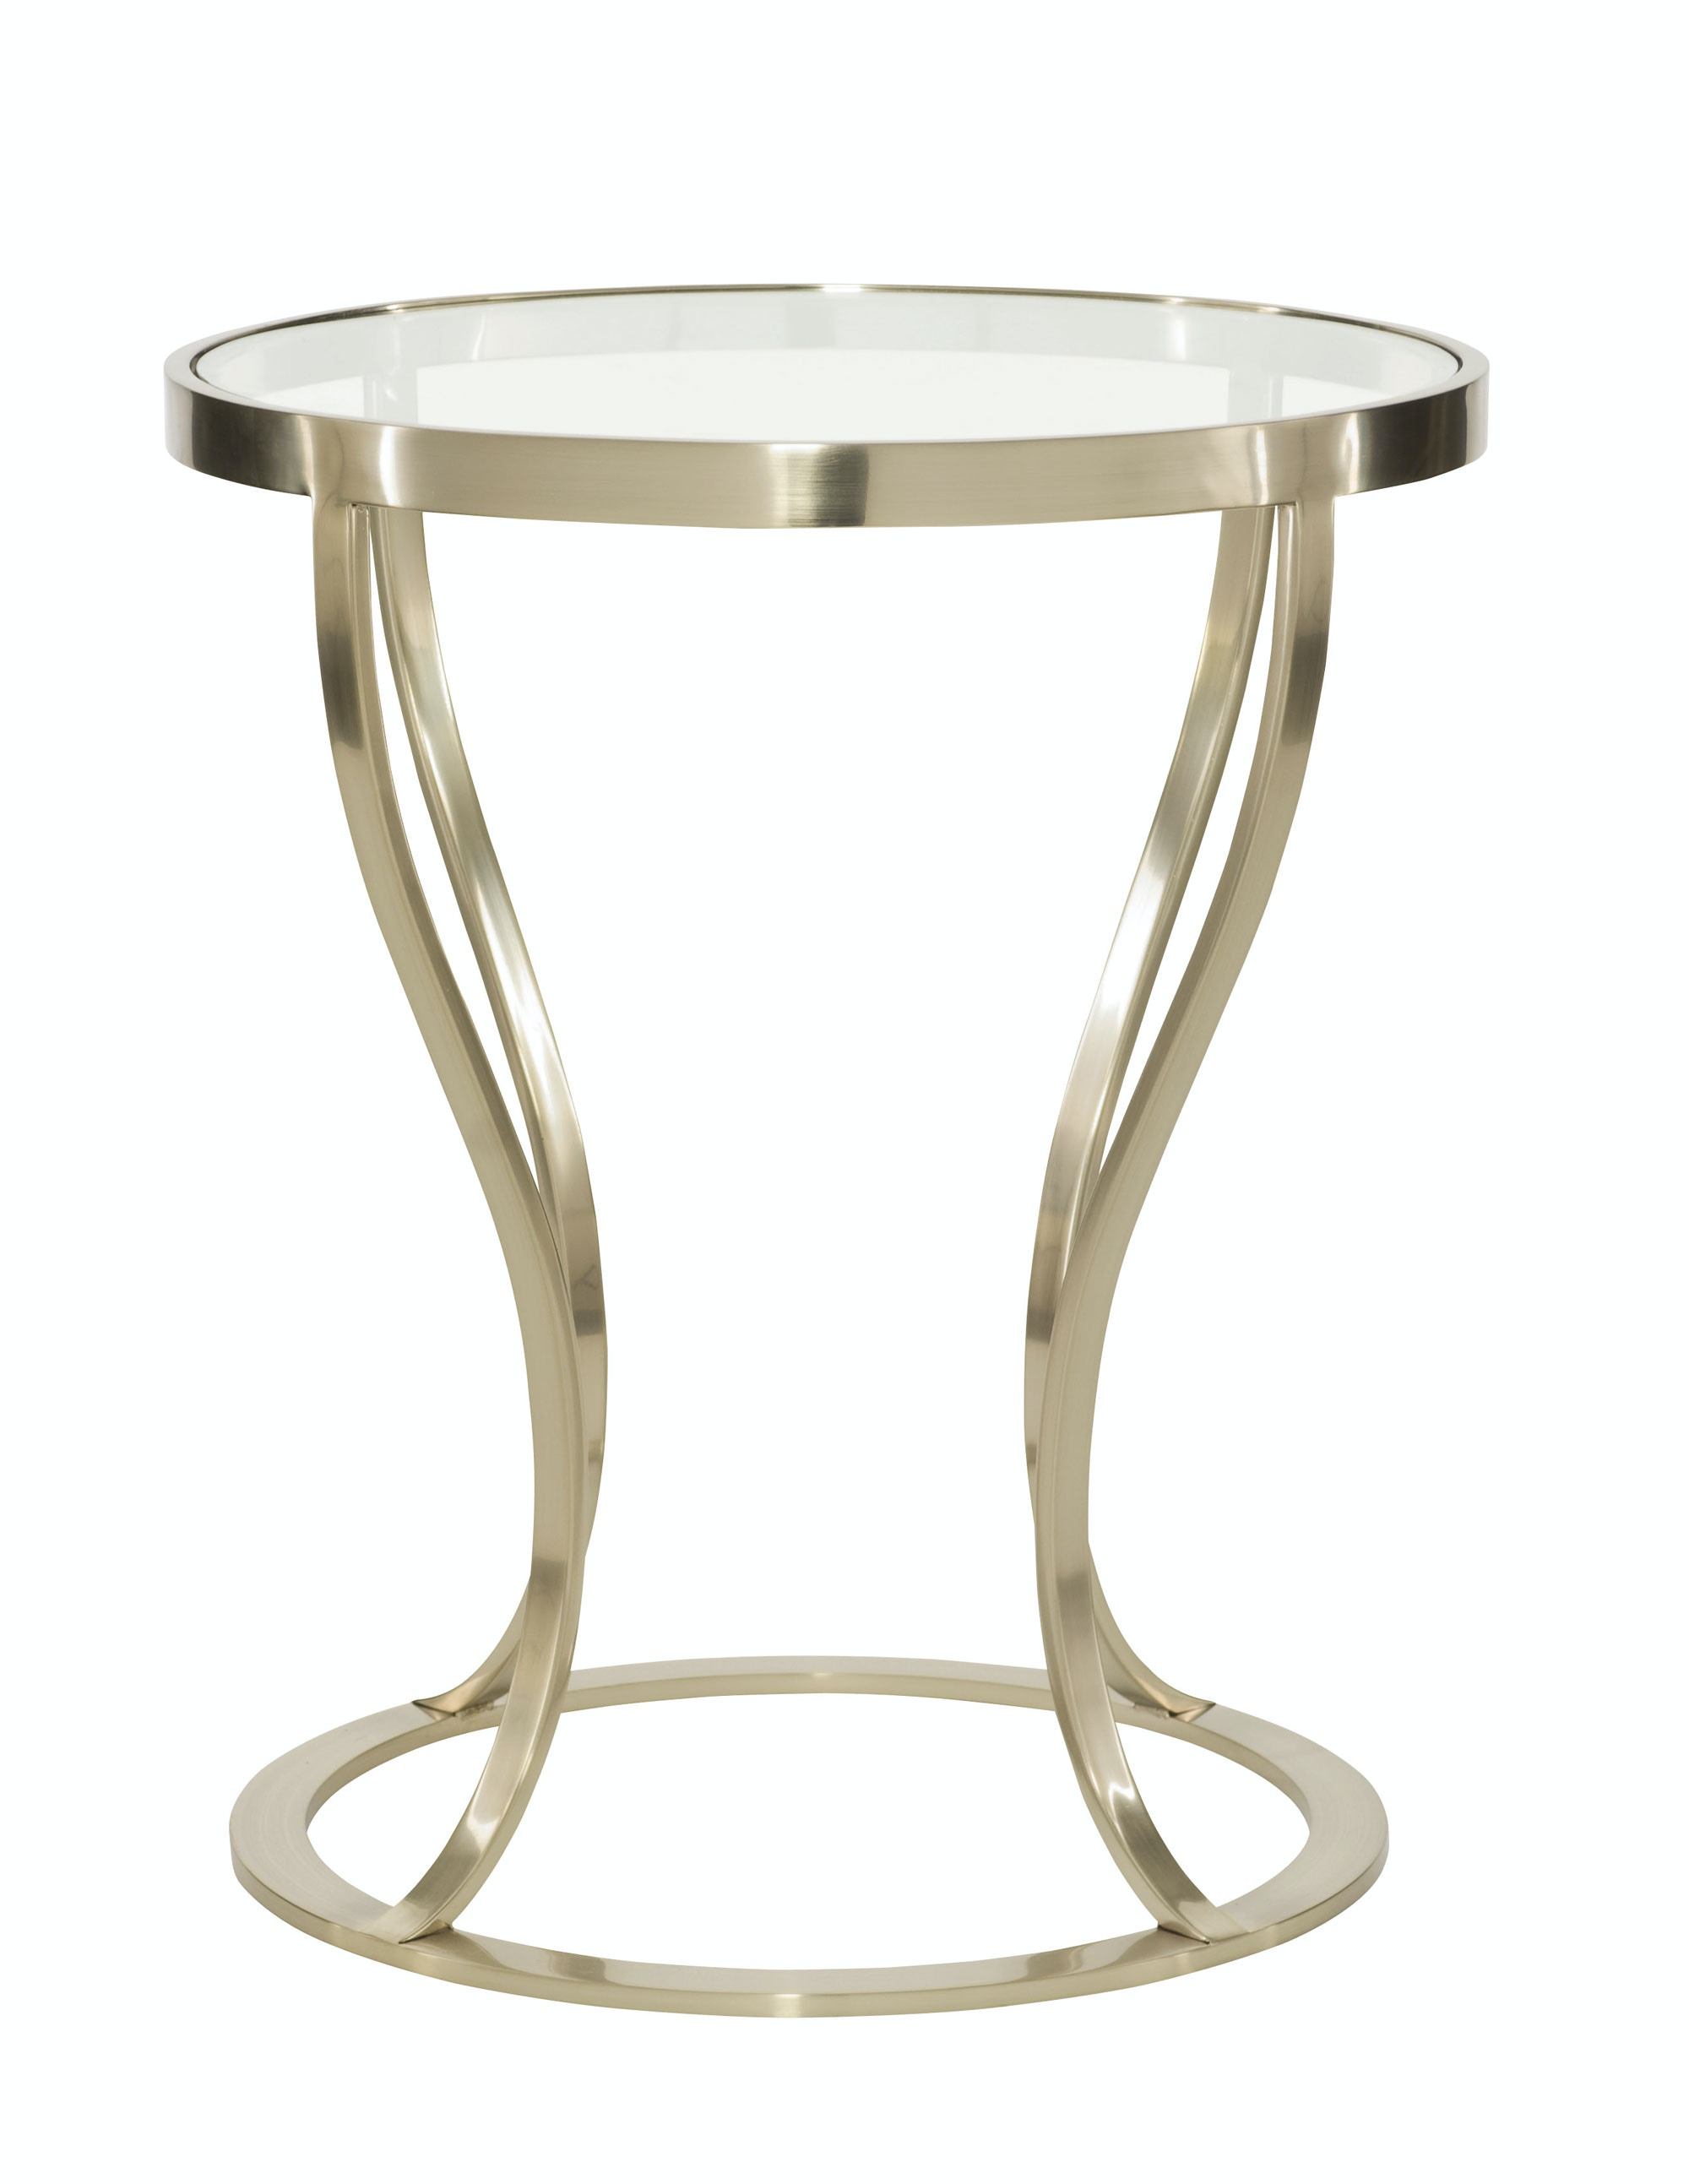 Bernhardt Furniture Miramont Round Metal Side Table Bernhardt Furniture  360 124